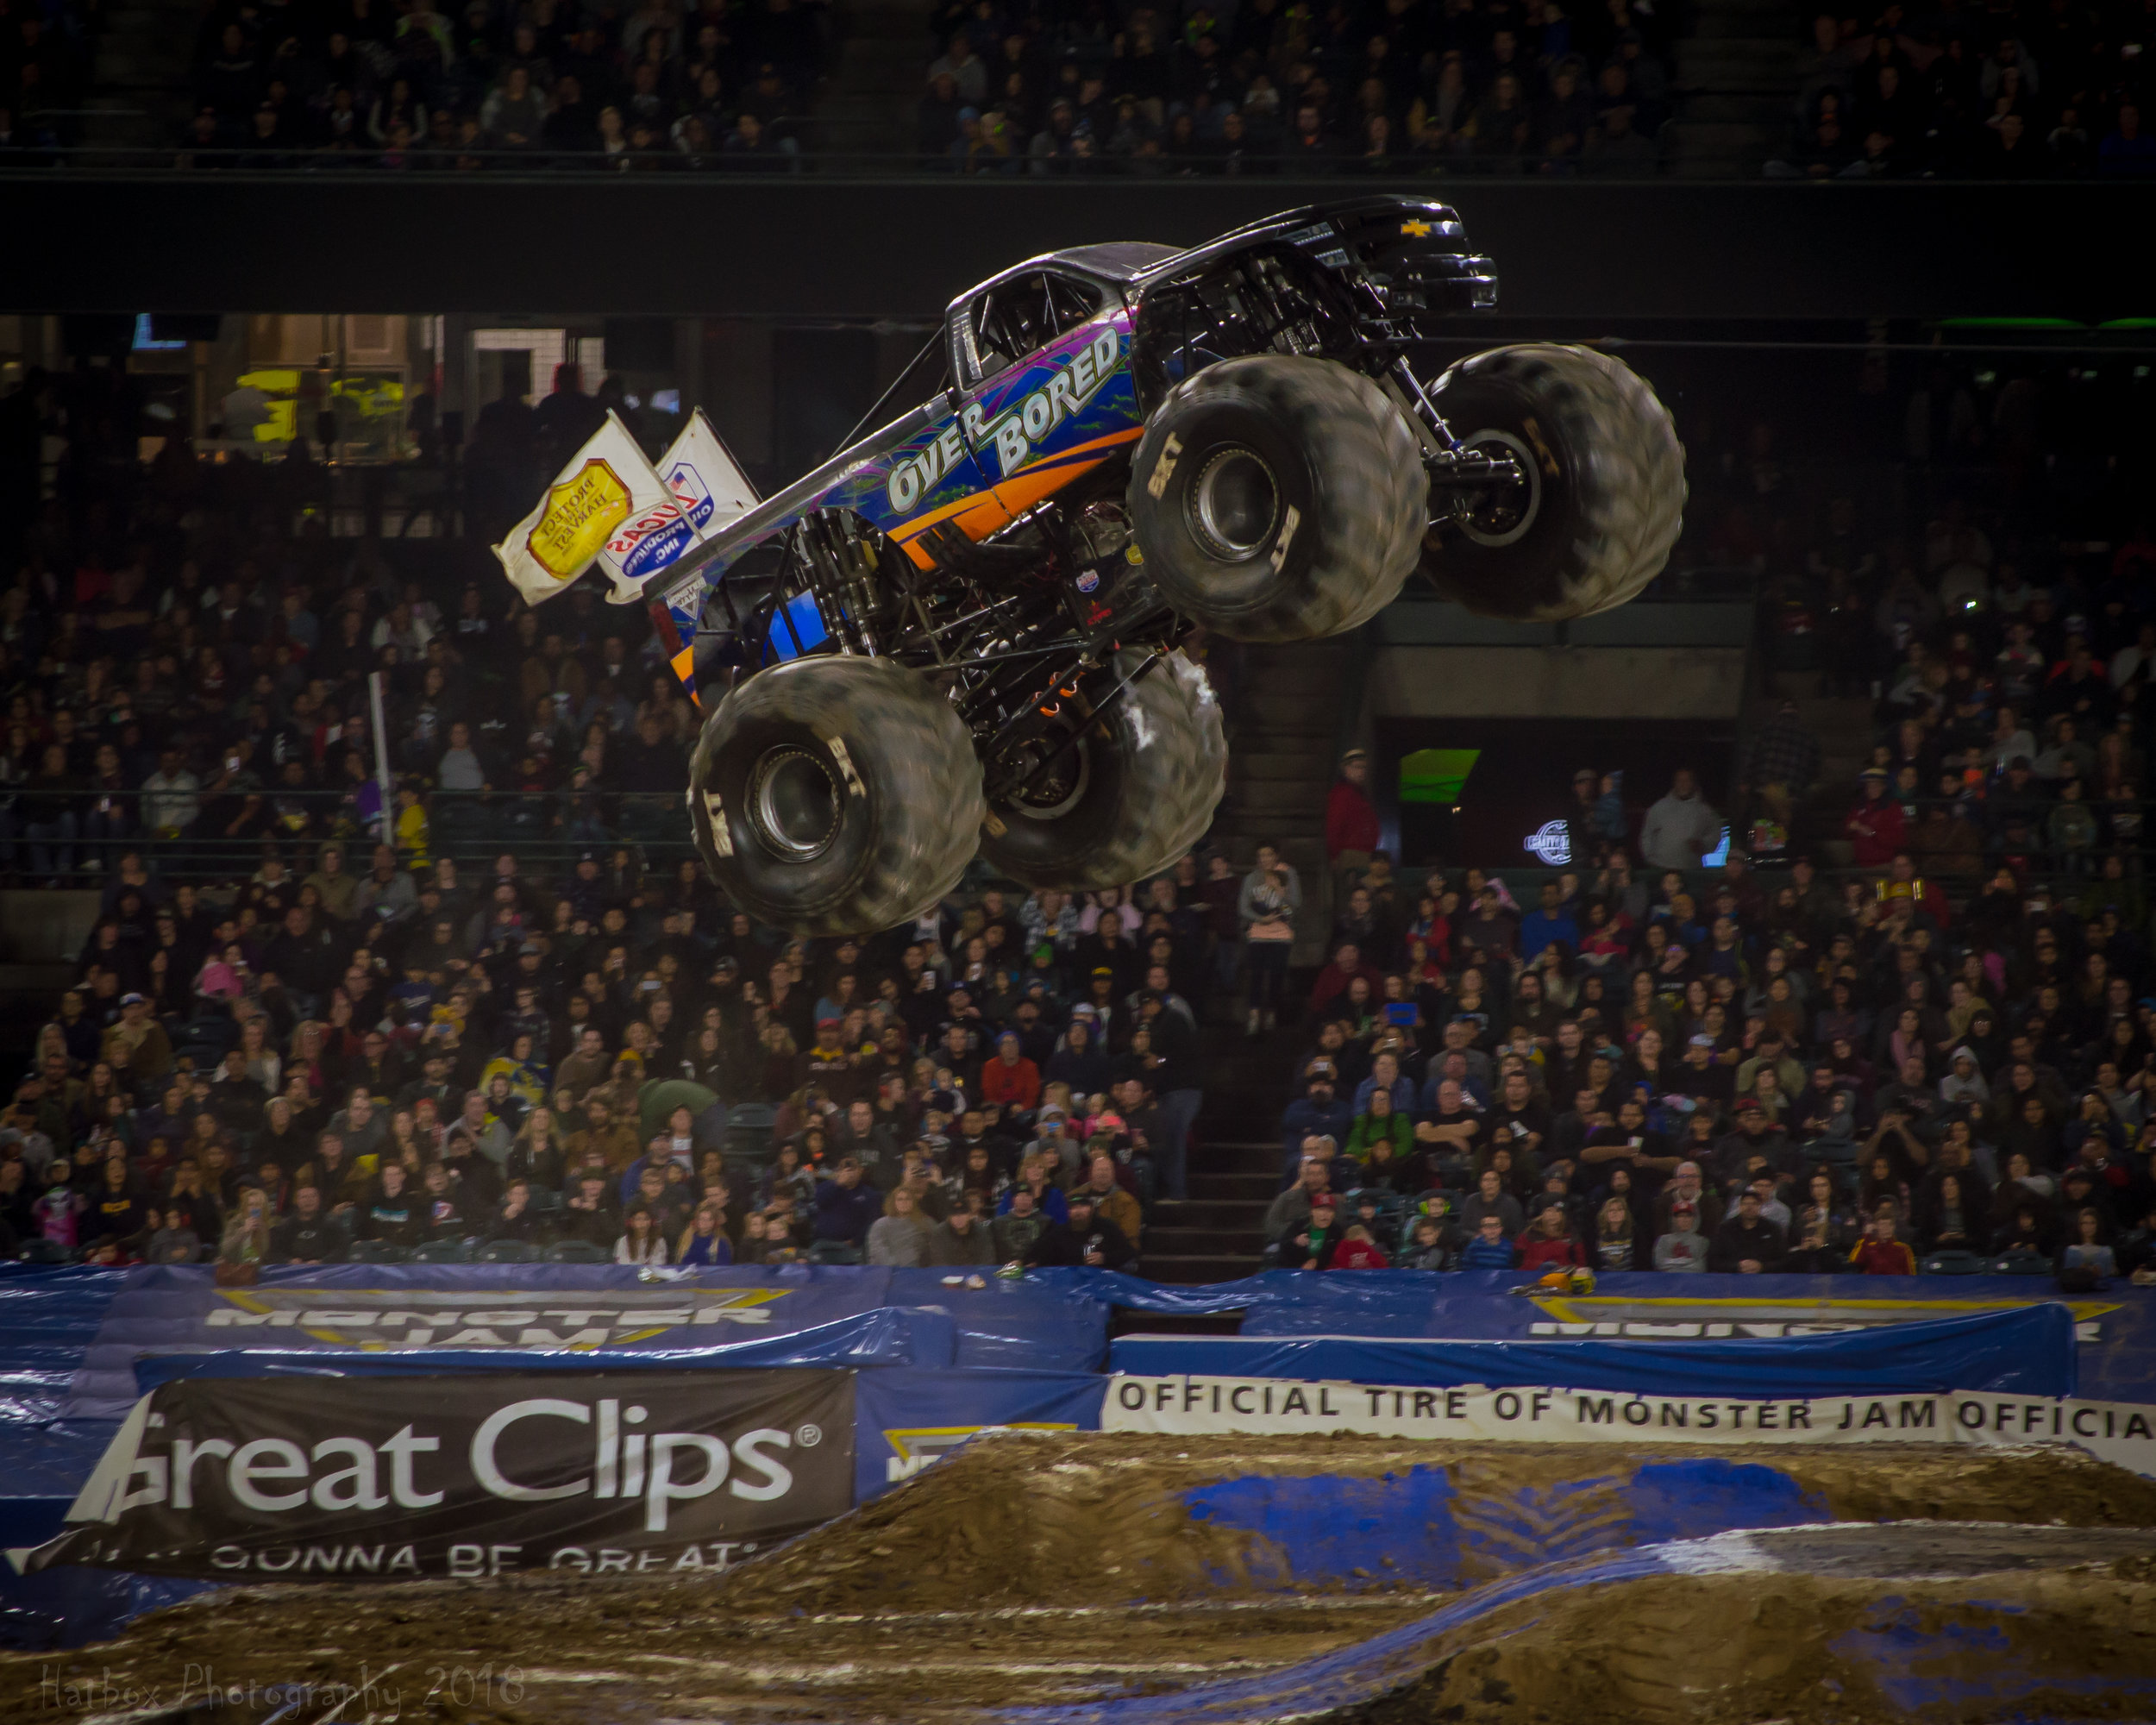 Over Bored driver Jamey Garner getting some big air during freestyle. Visit  https://www.monsterjam.com/en-US/trucks/over-bored  to learn more about Over Bored.